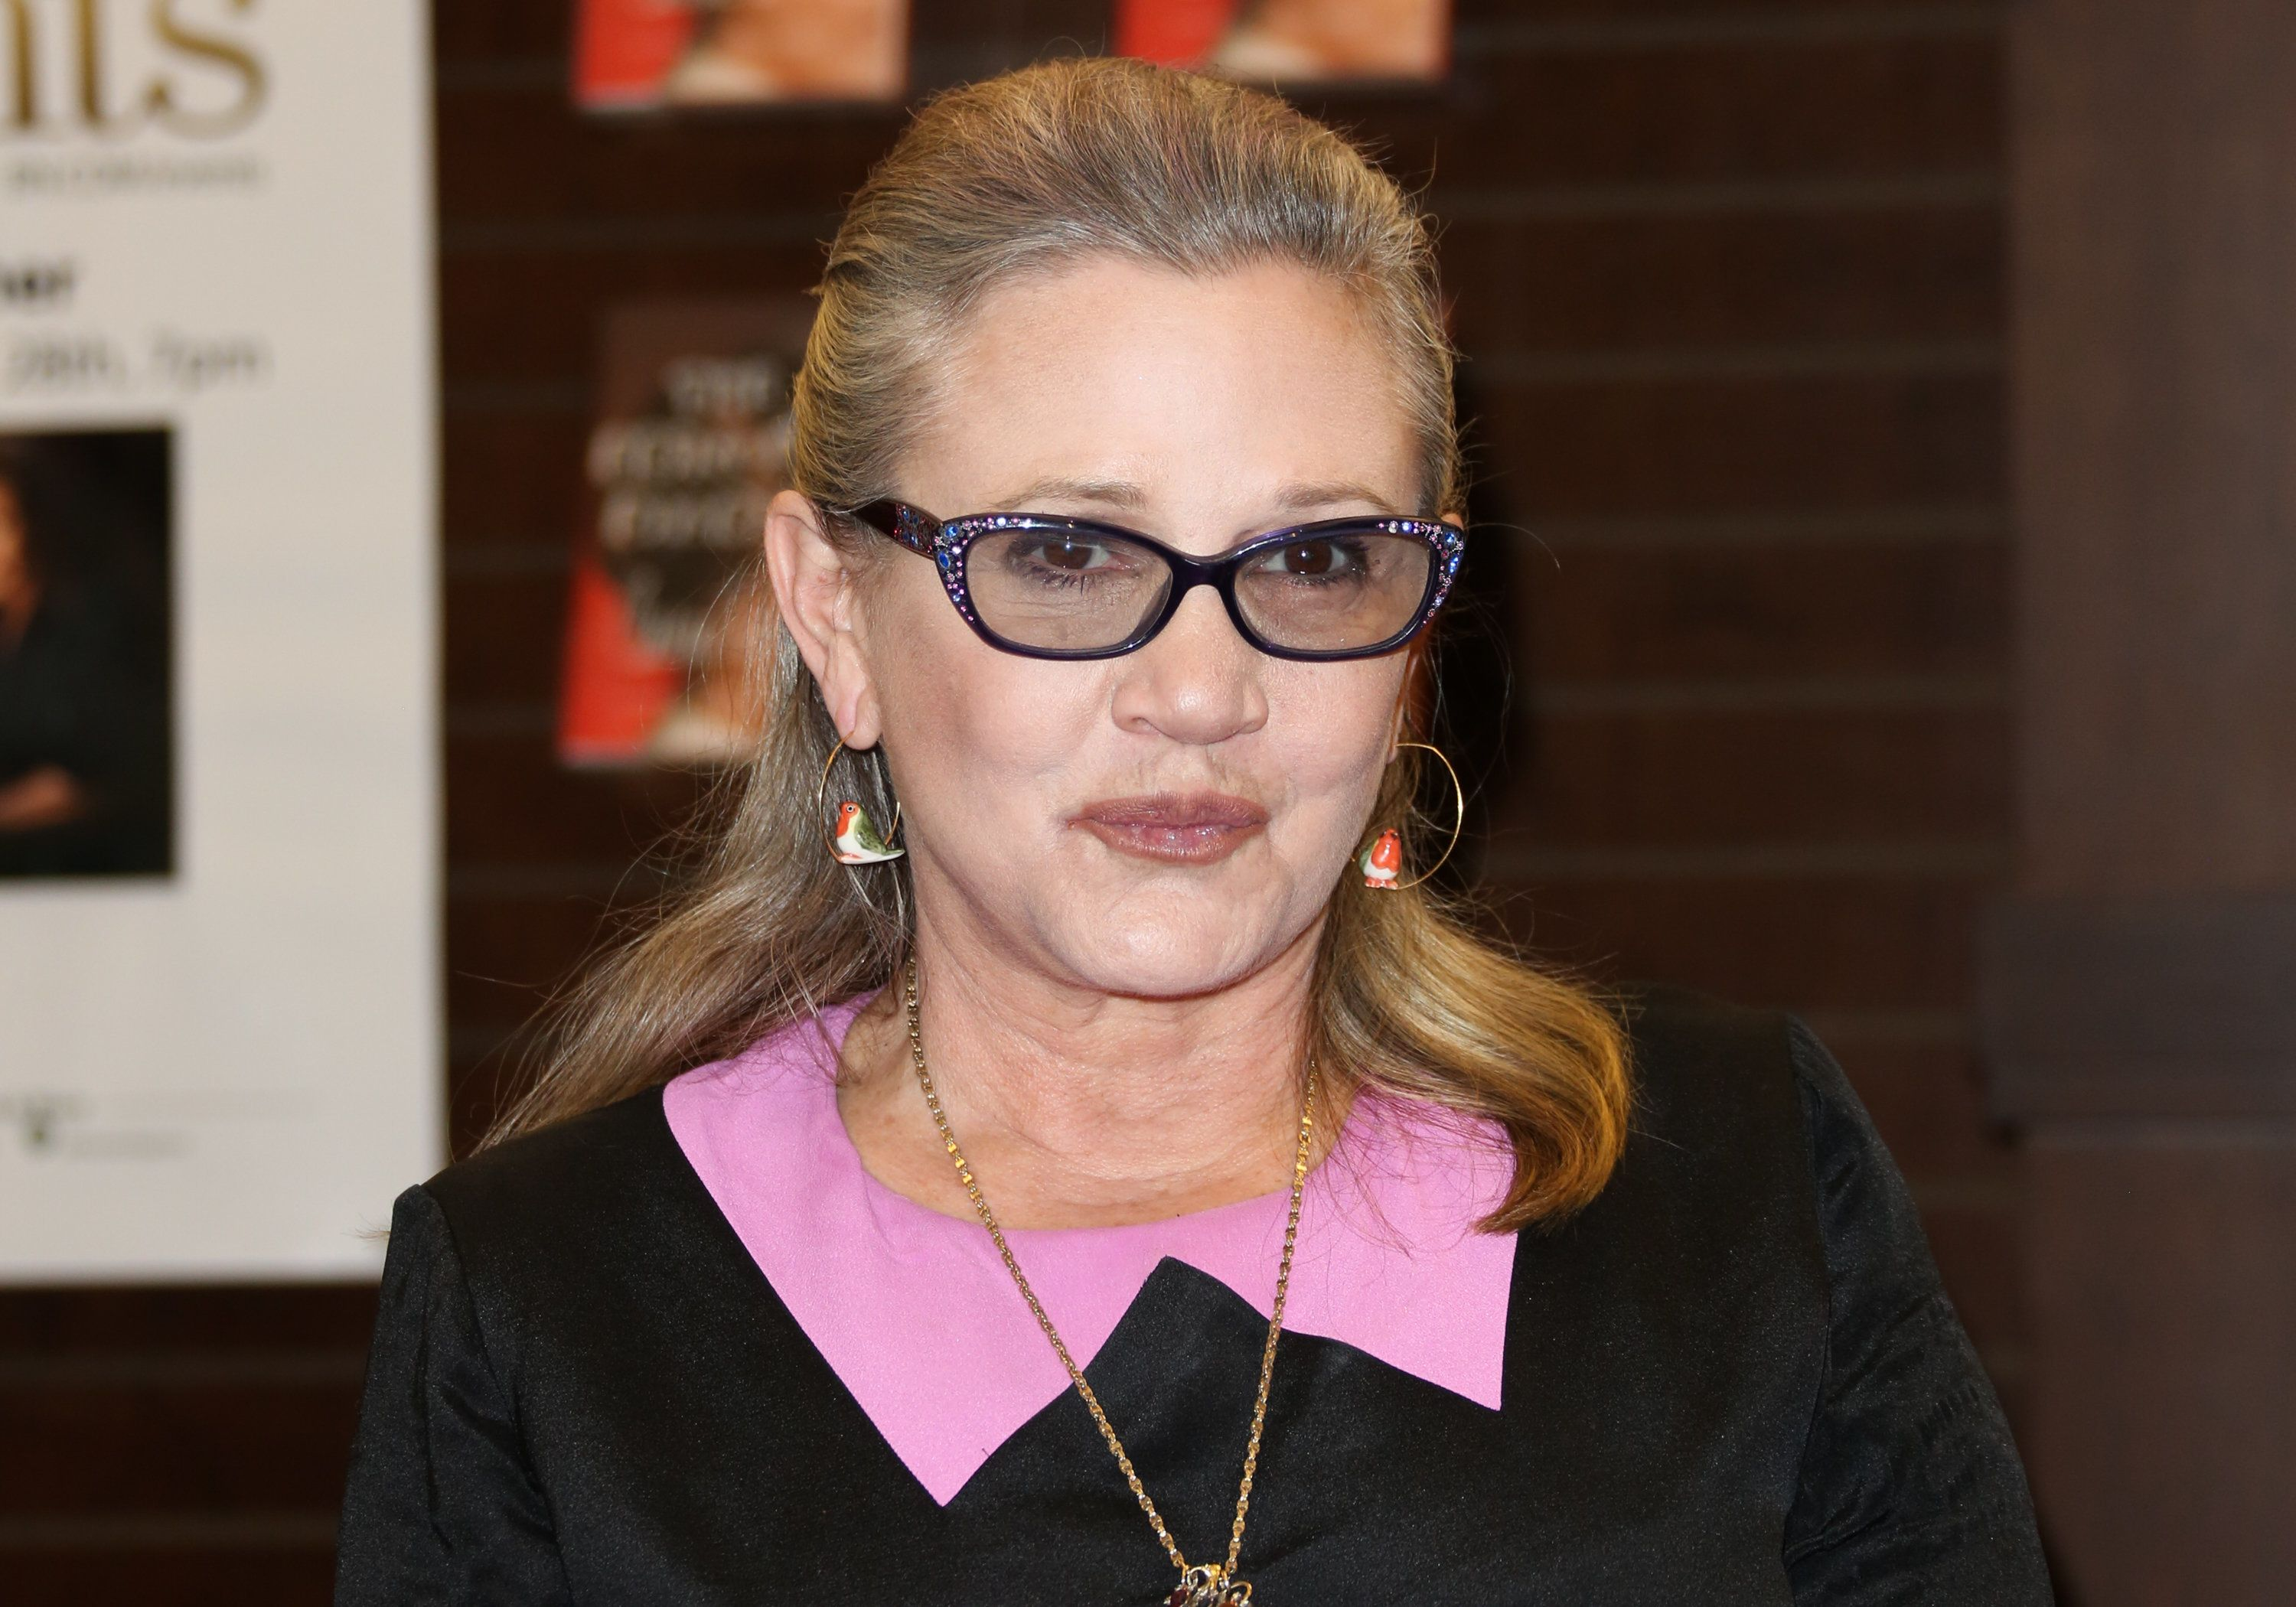 Paul Archuleta via Getty Images Carrie Fisher in Los Angeles last year about a month before her death